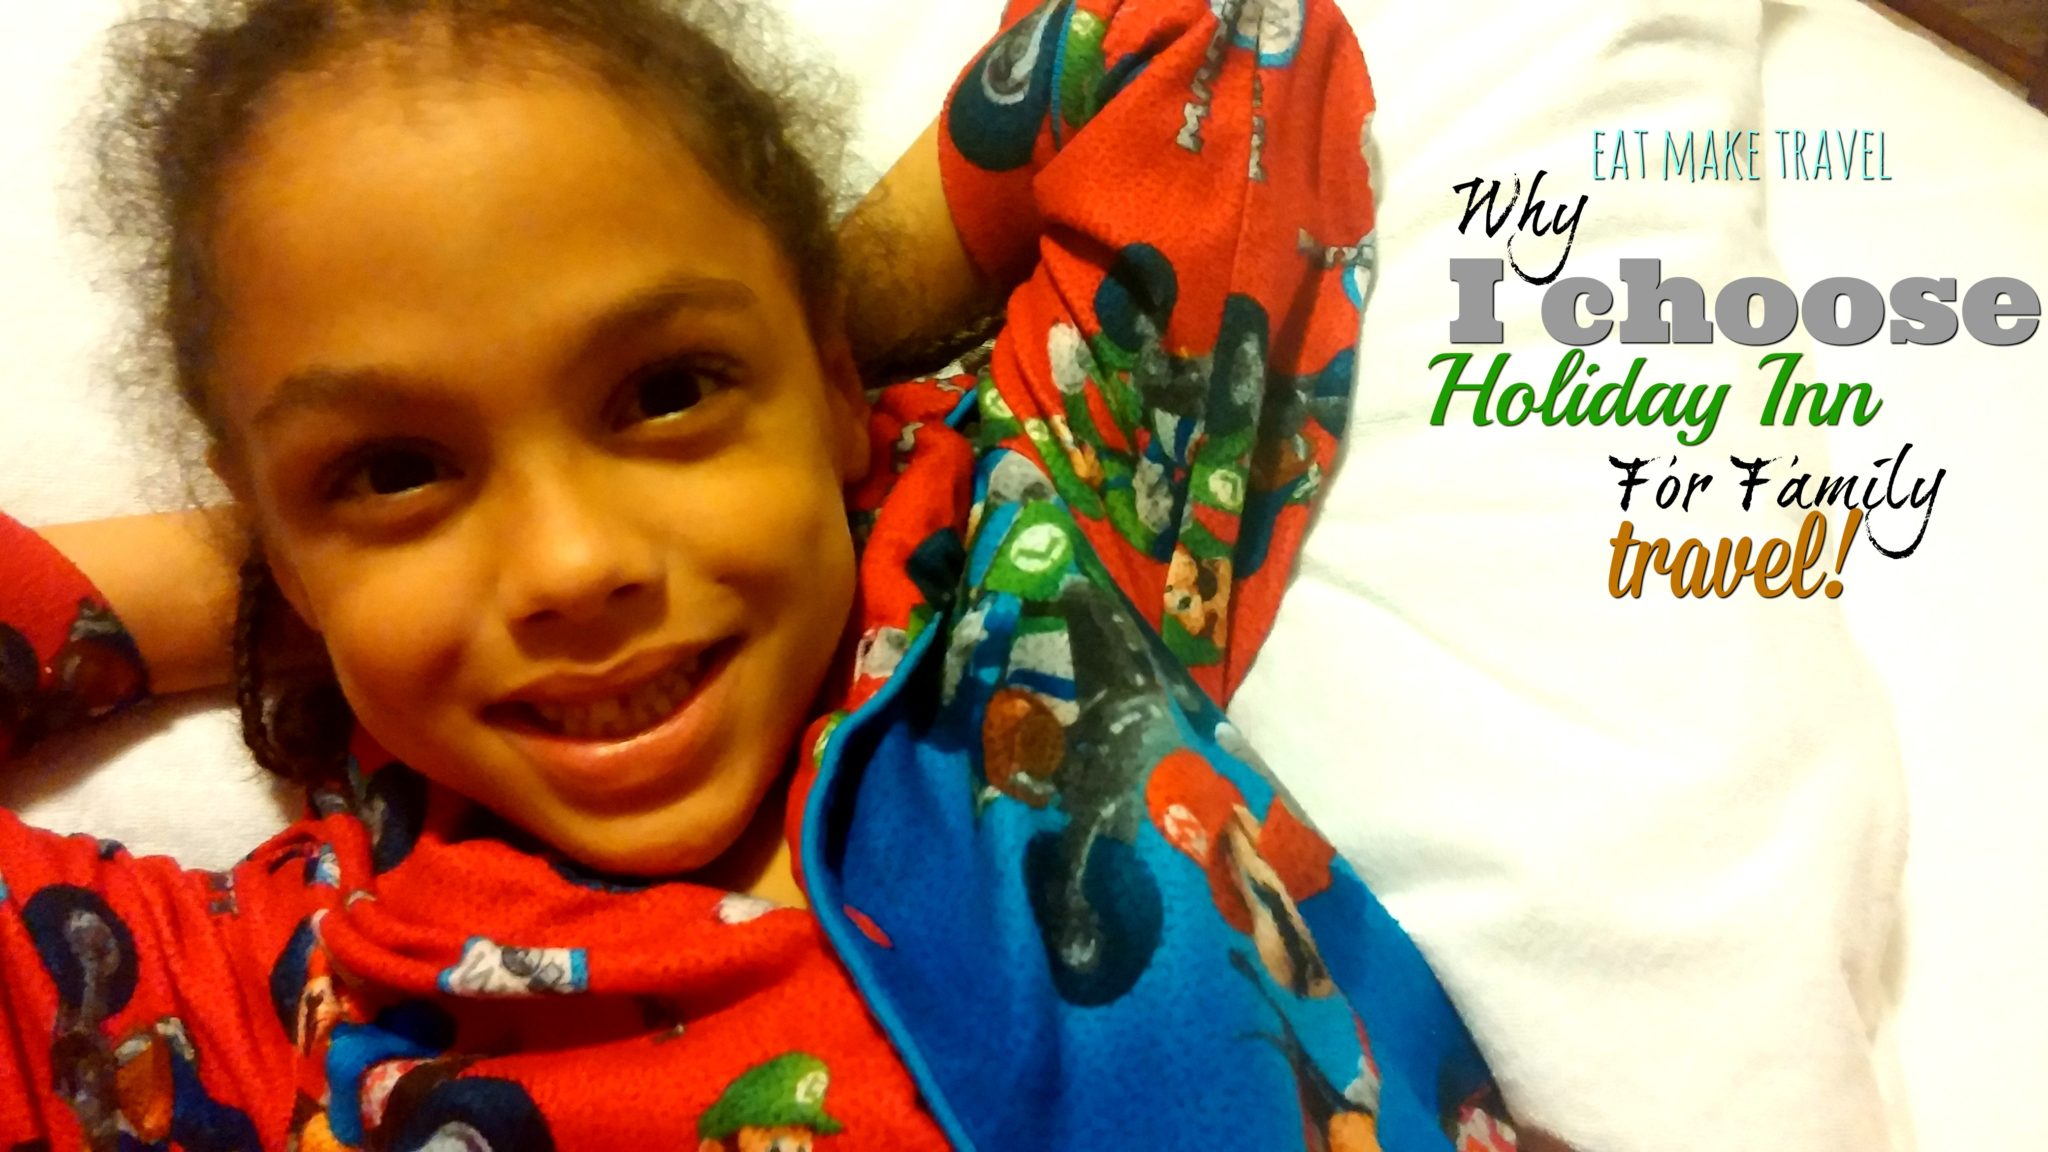 Why I Choose Holiday Inn for Family Travel!